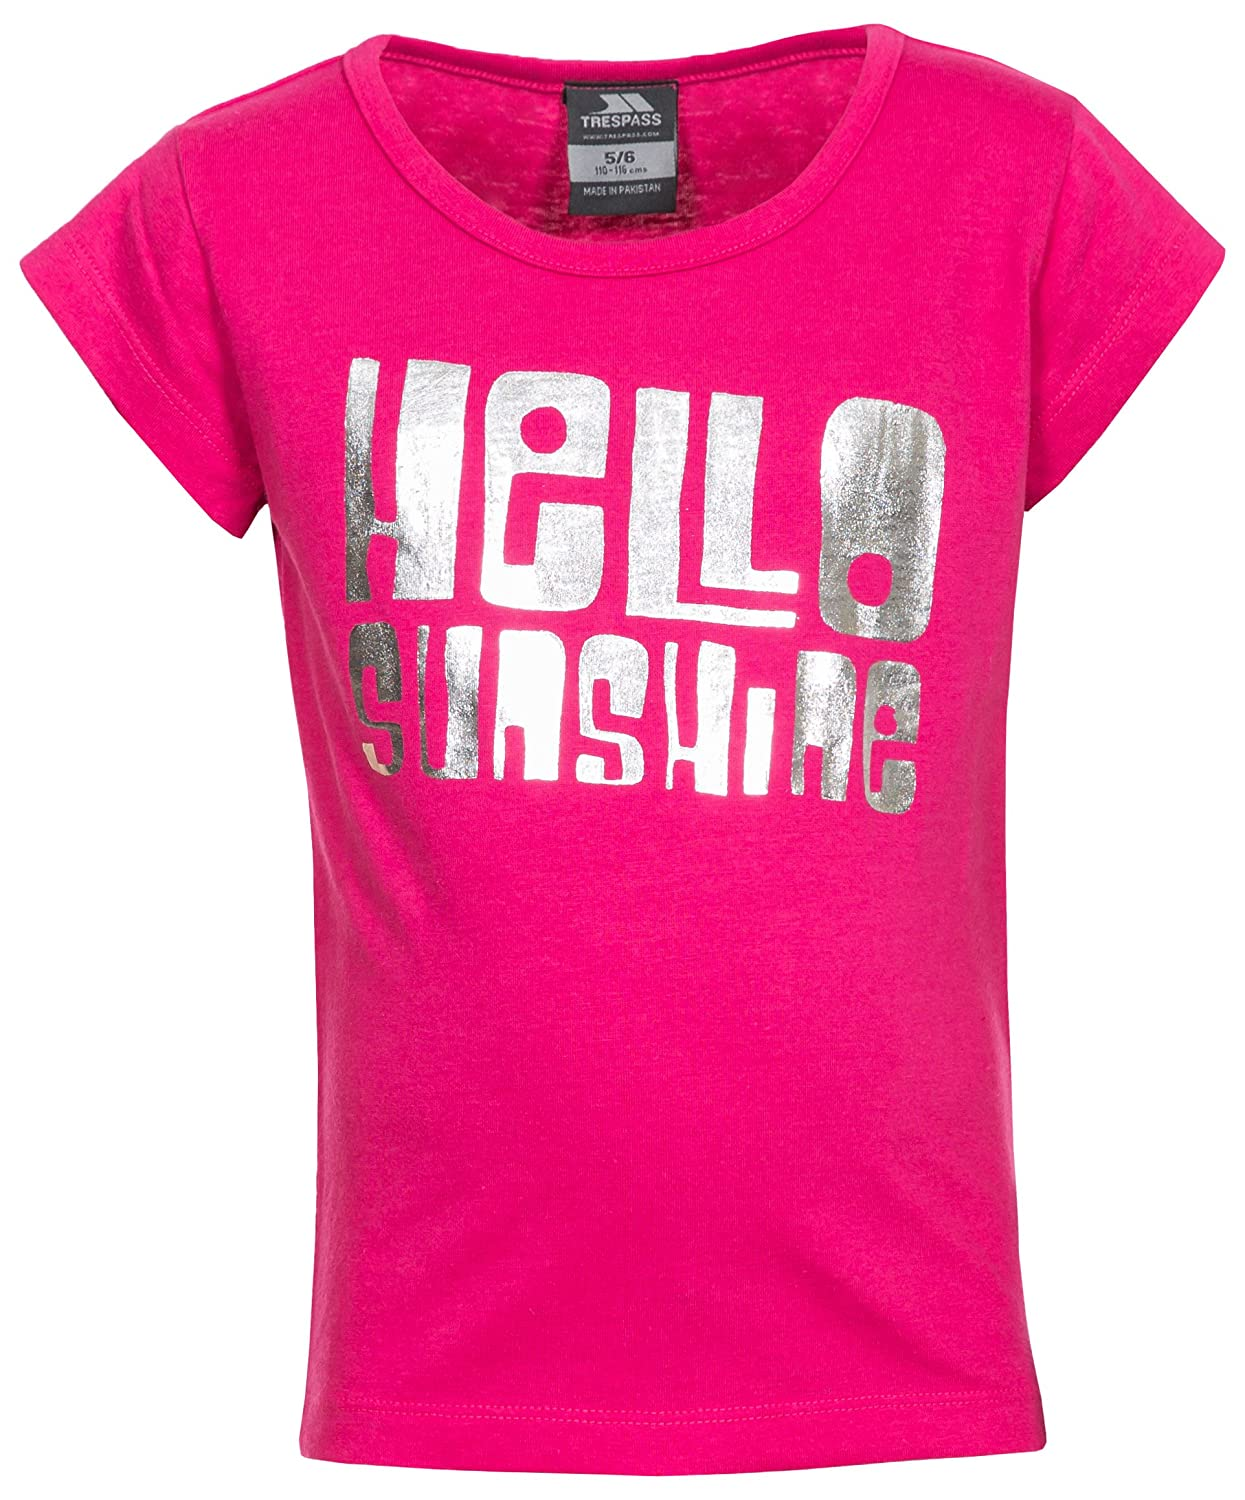 Trespass Kids Hello T-Shirt with Cool Frontal Print for Children Girls//Toddlers Ages 2-12 for Outdoor//Fun//Sports//Leisure